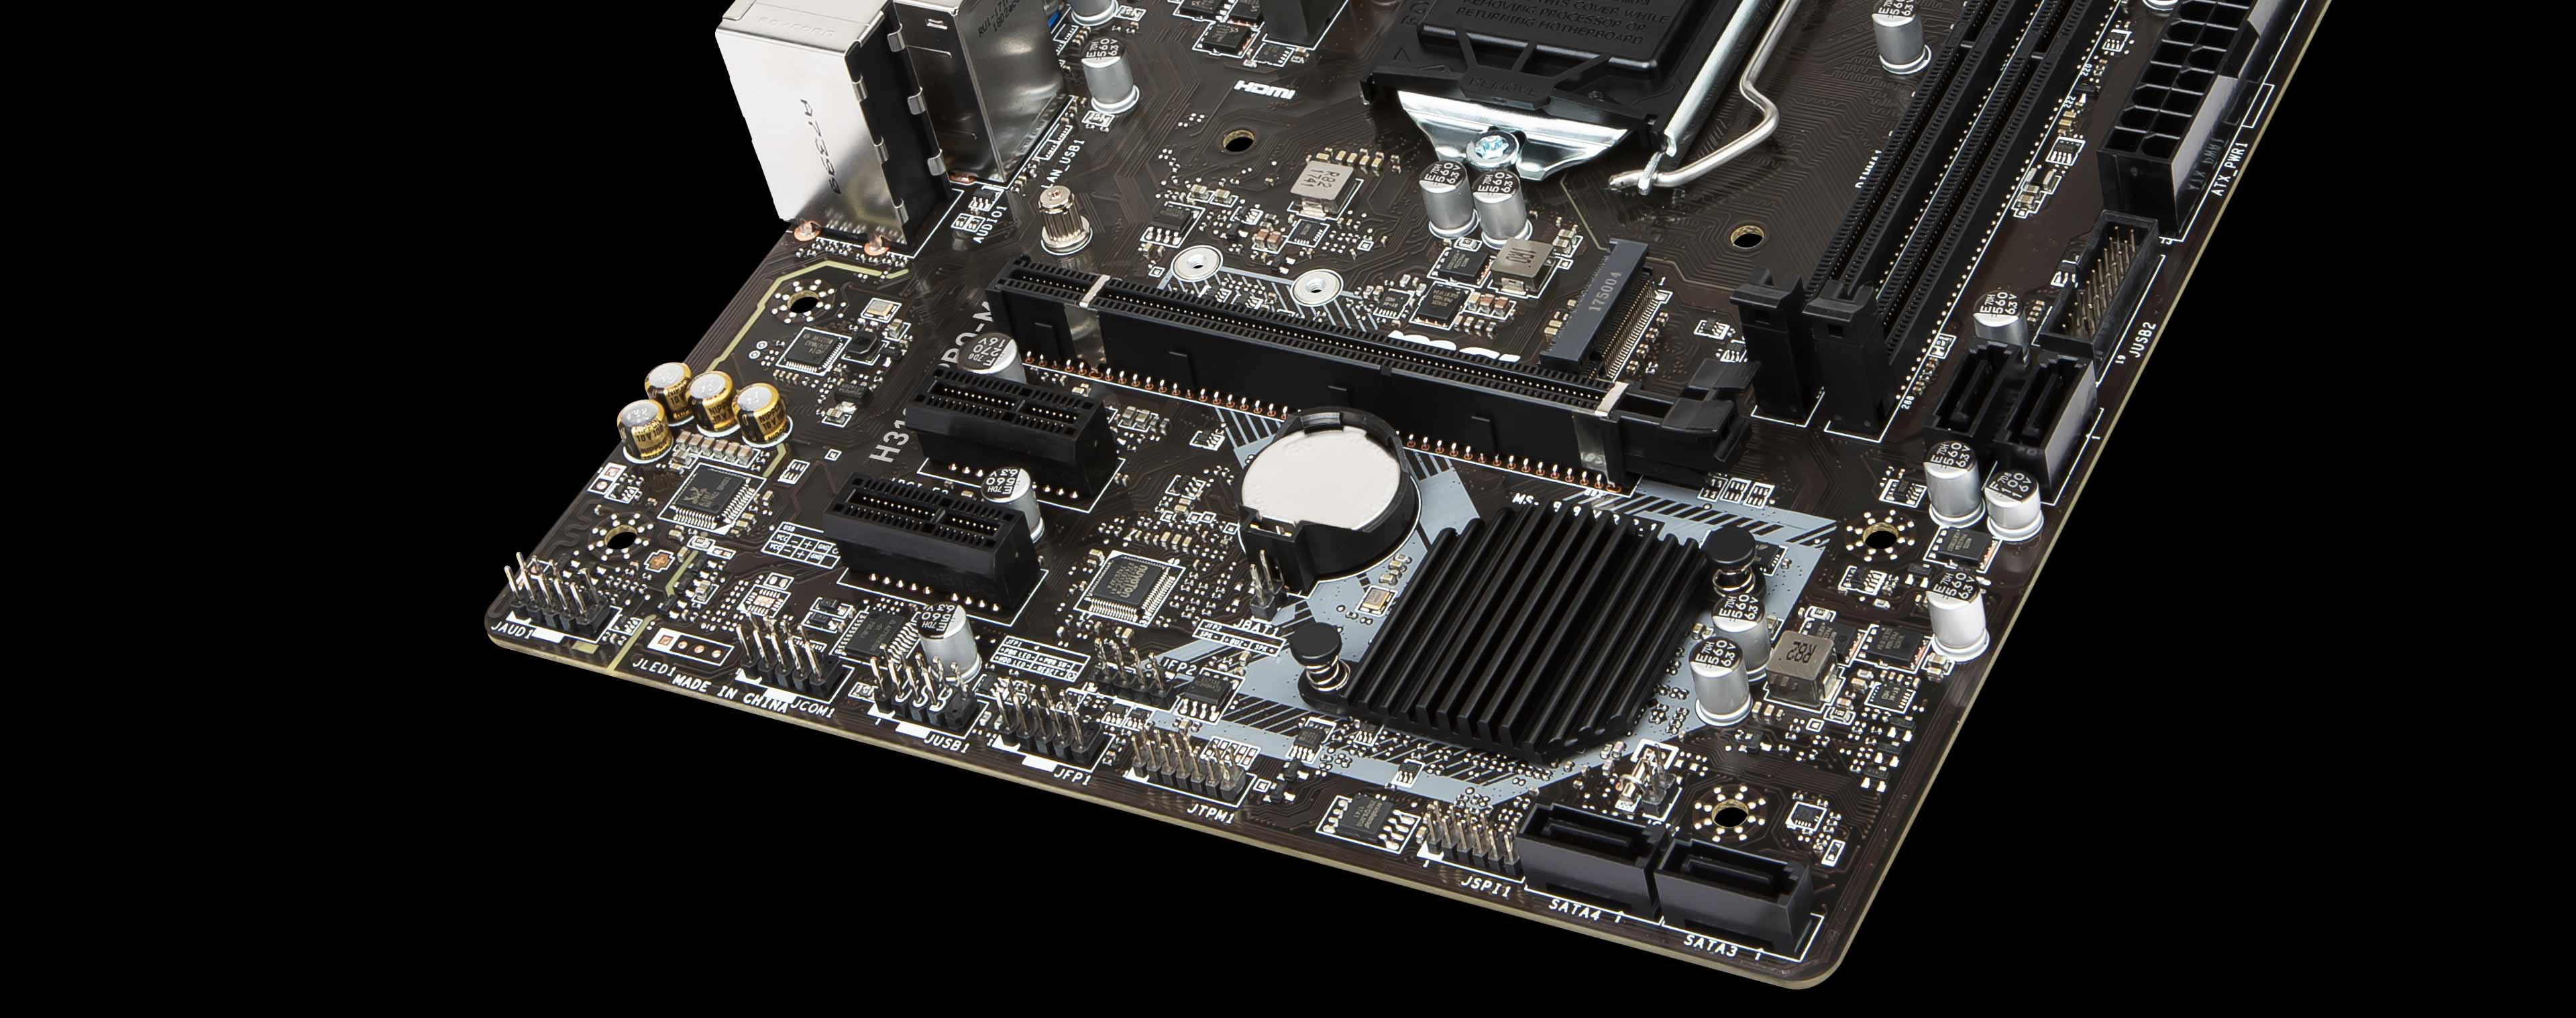 H310M PRO-M2 | Motherboard - The world leader in motherboard